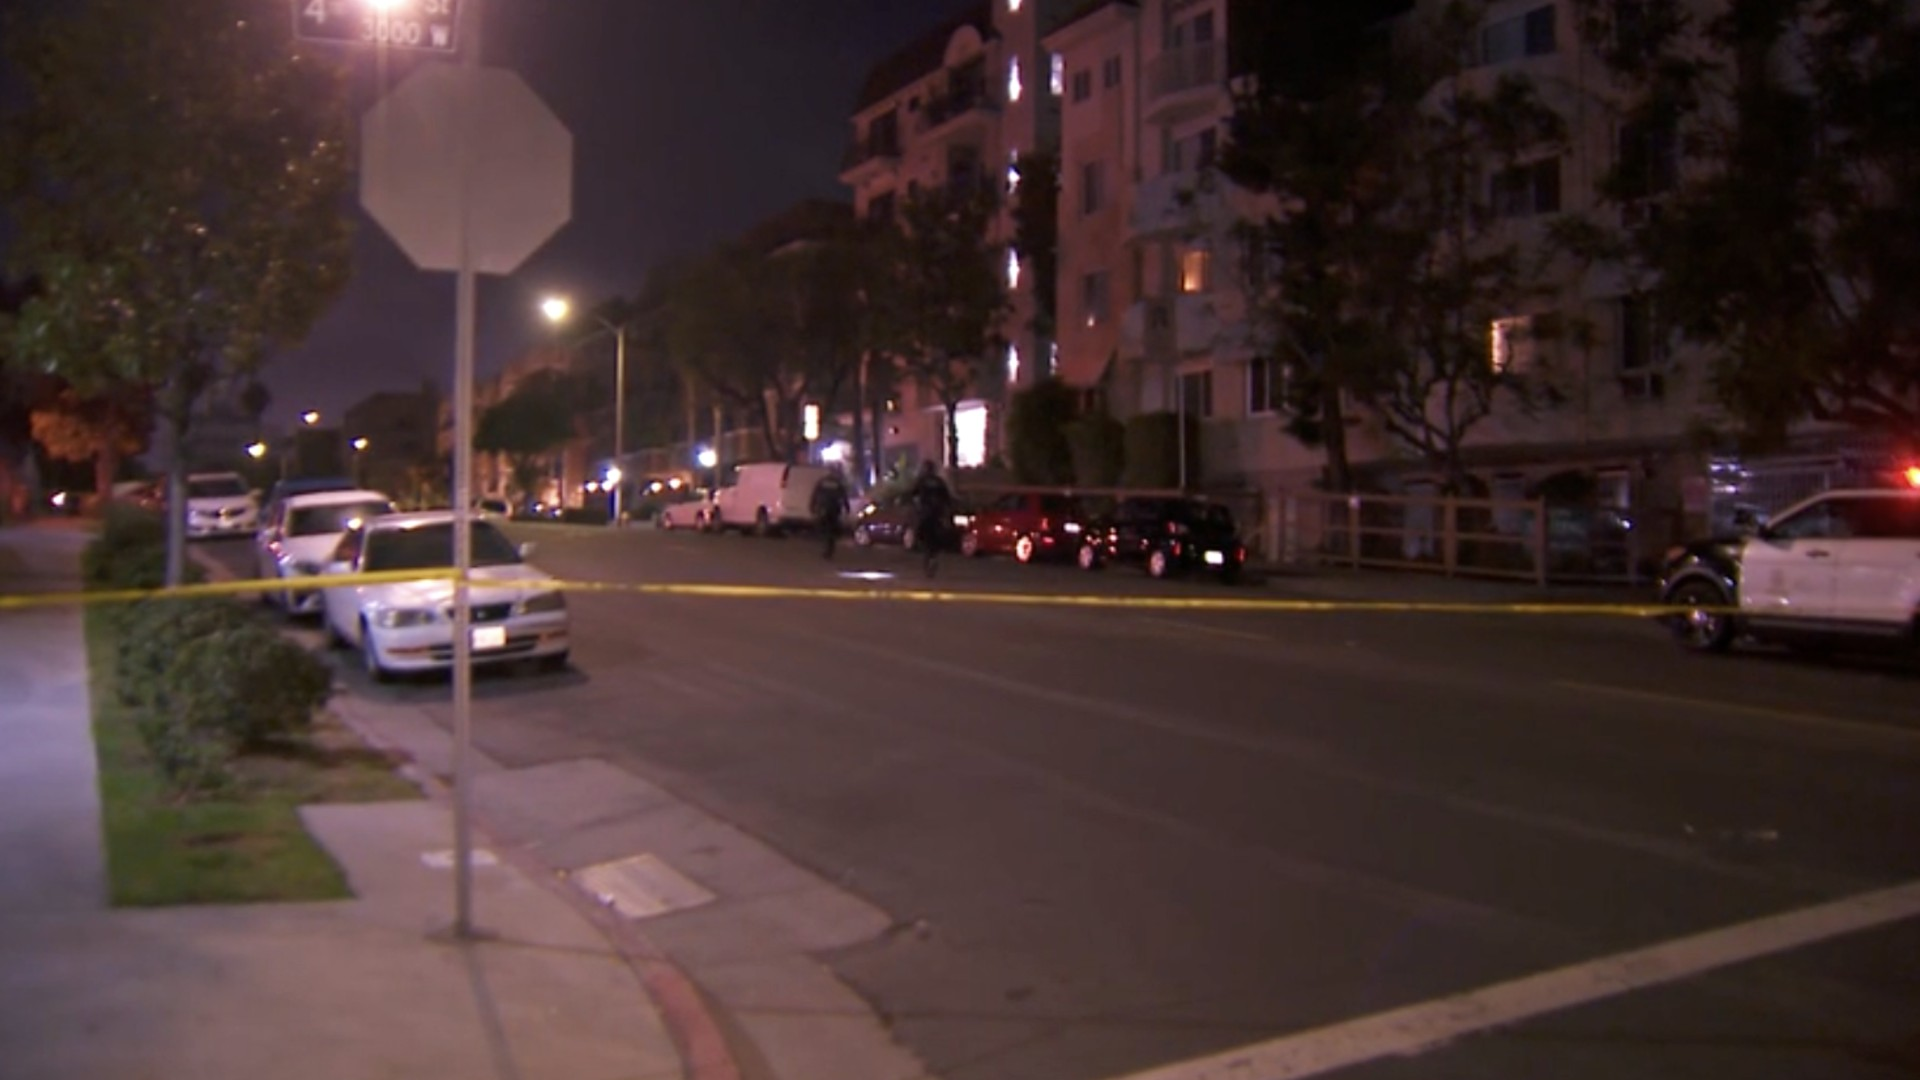 Police investigate a stabbing and possible carjacking in the Koreatown area on Aug. 10, 2021. (KTLA)